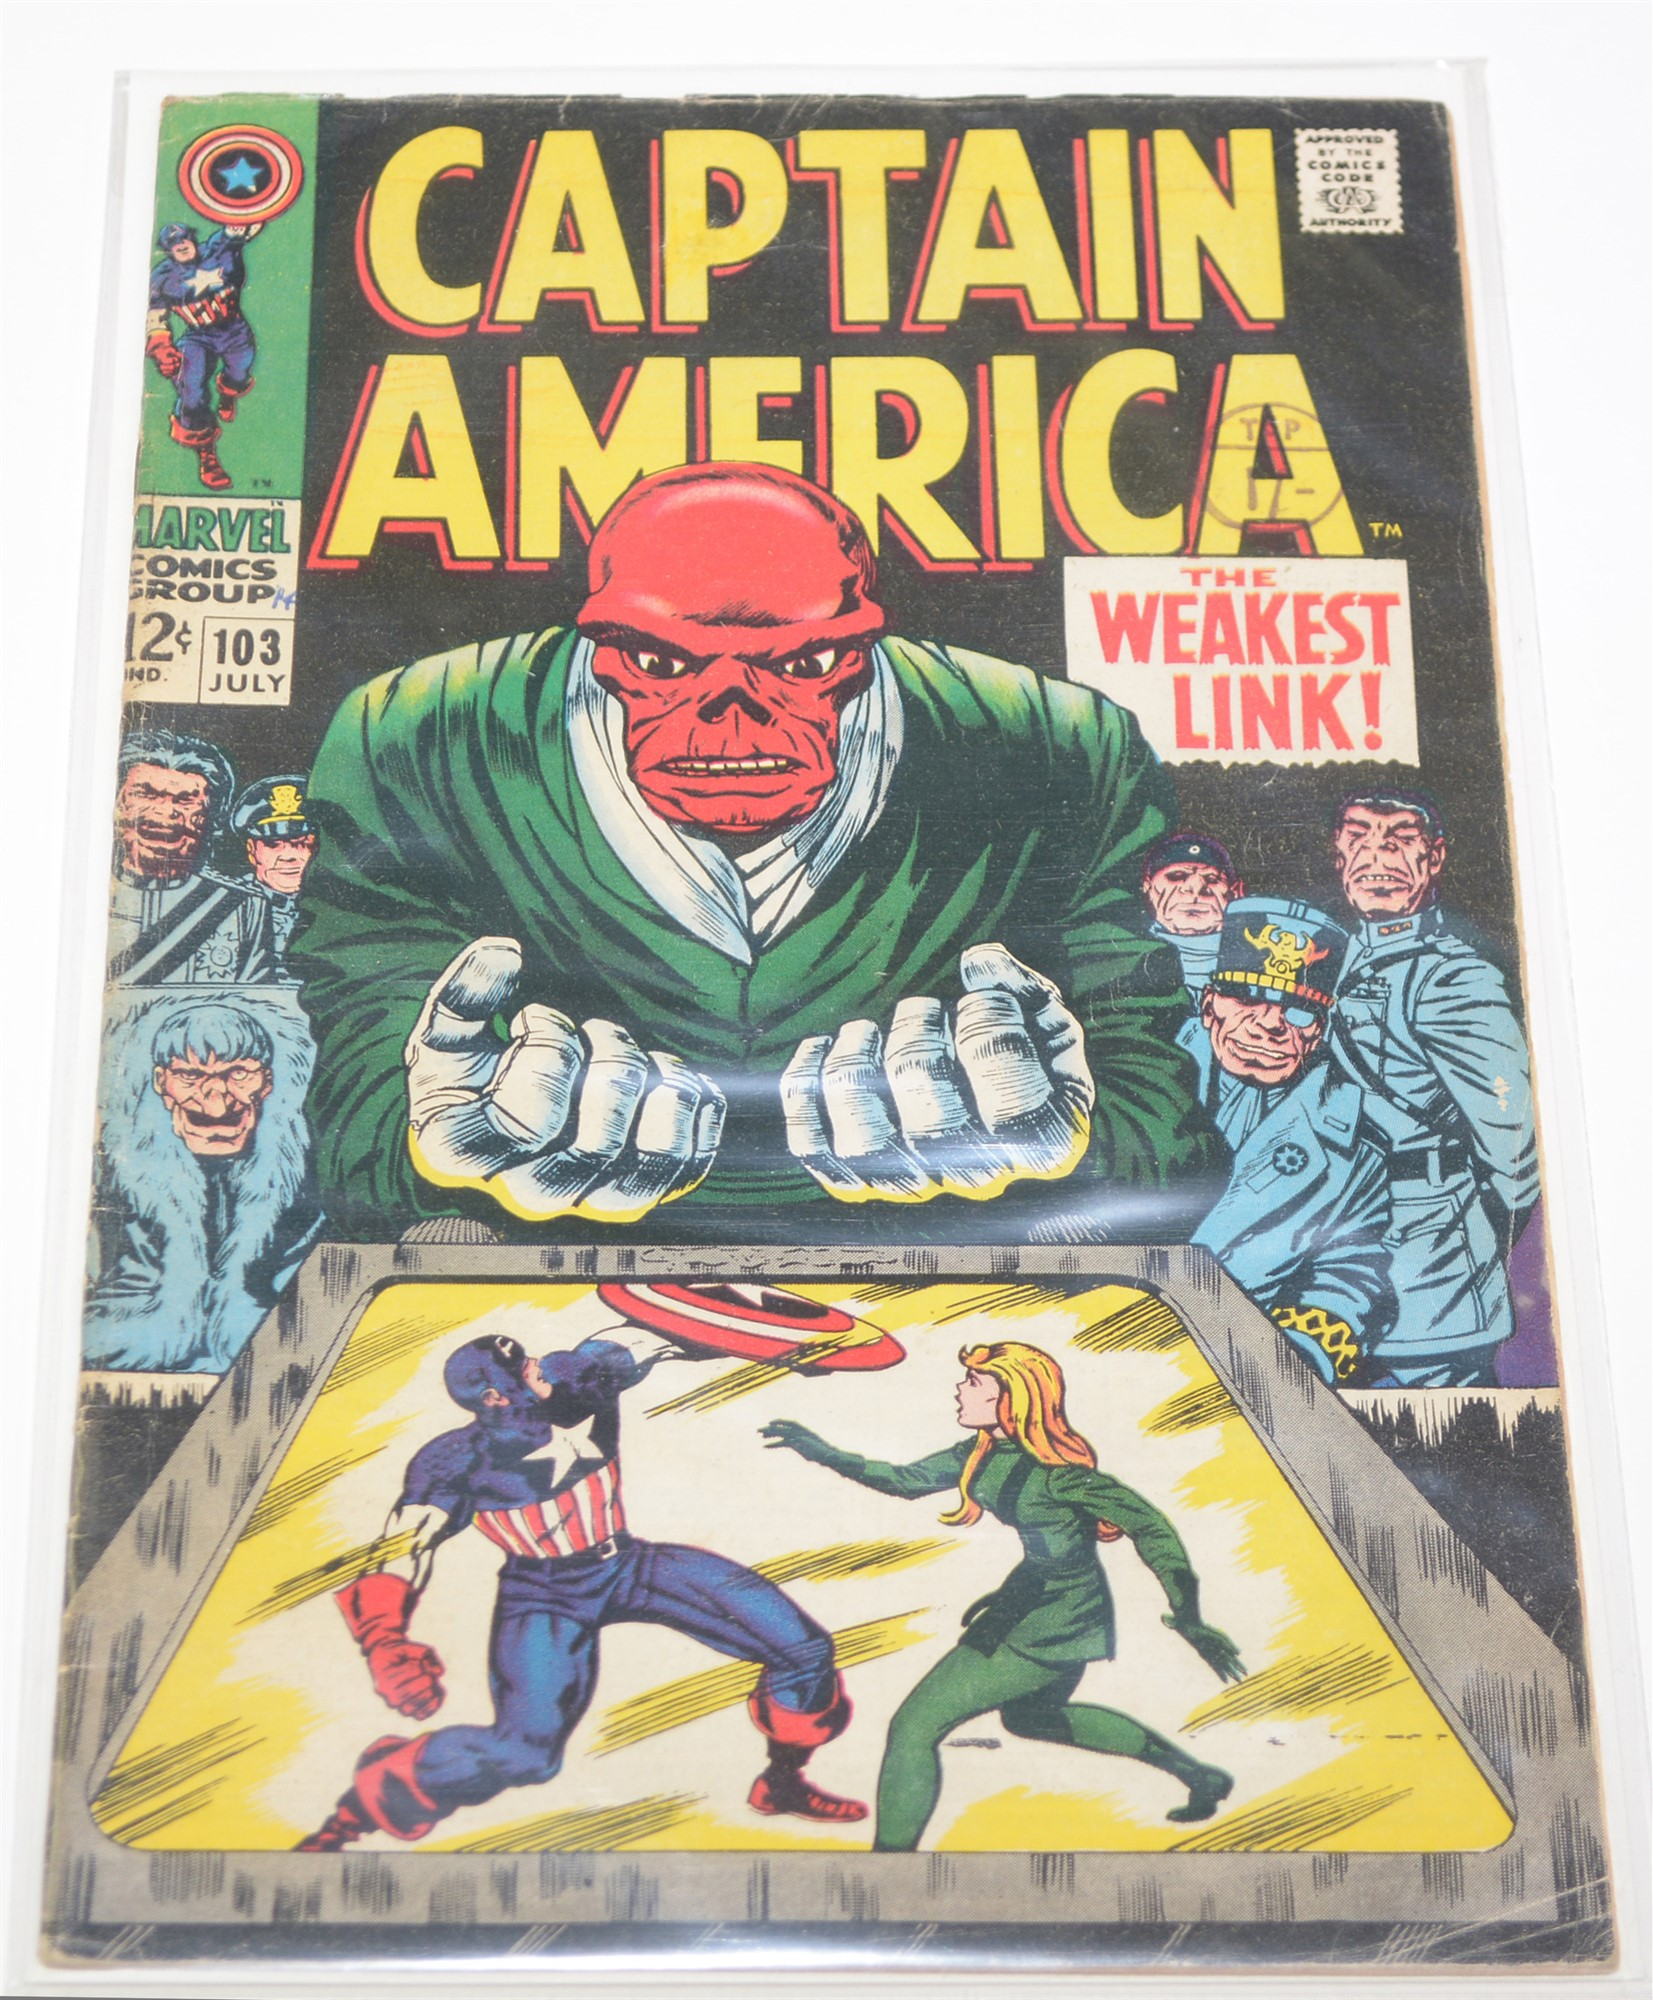 Captain America No. 101, 103, 104 and 107. - Image 2 of 4